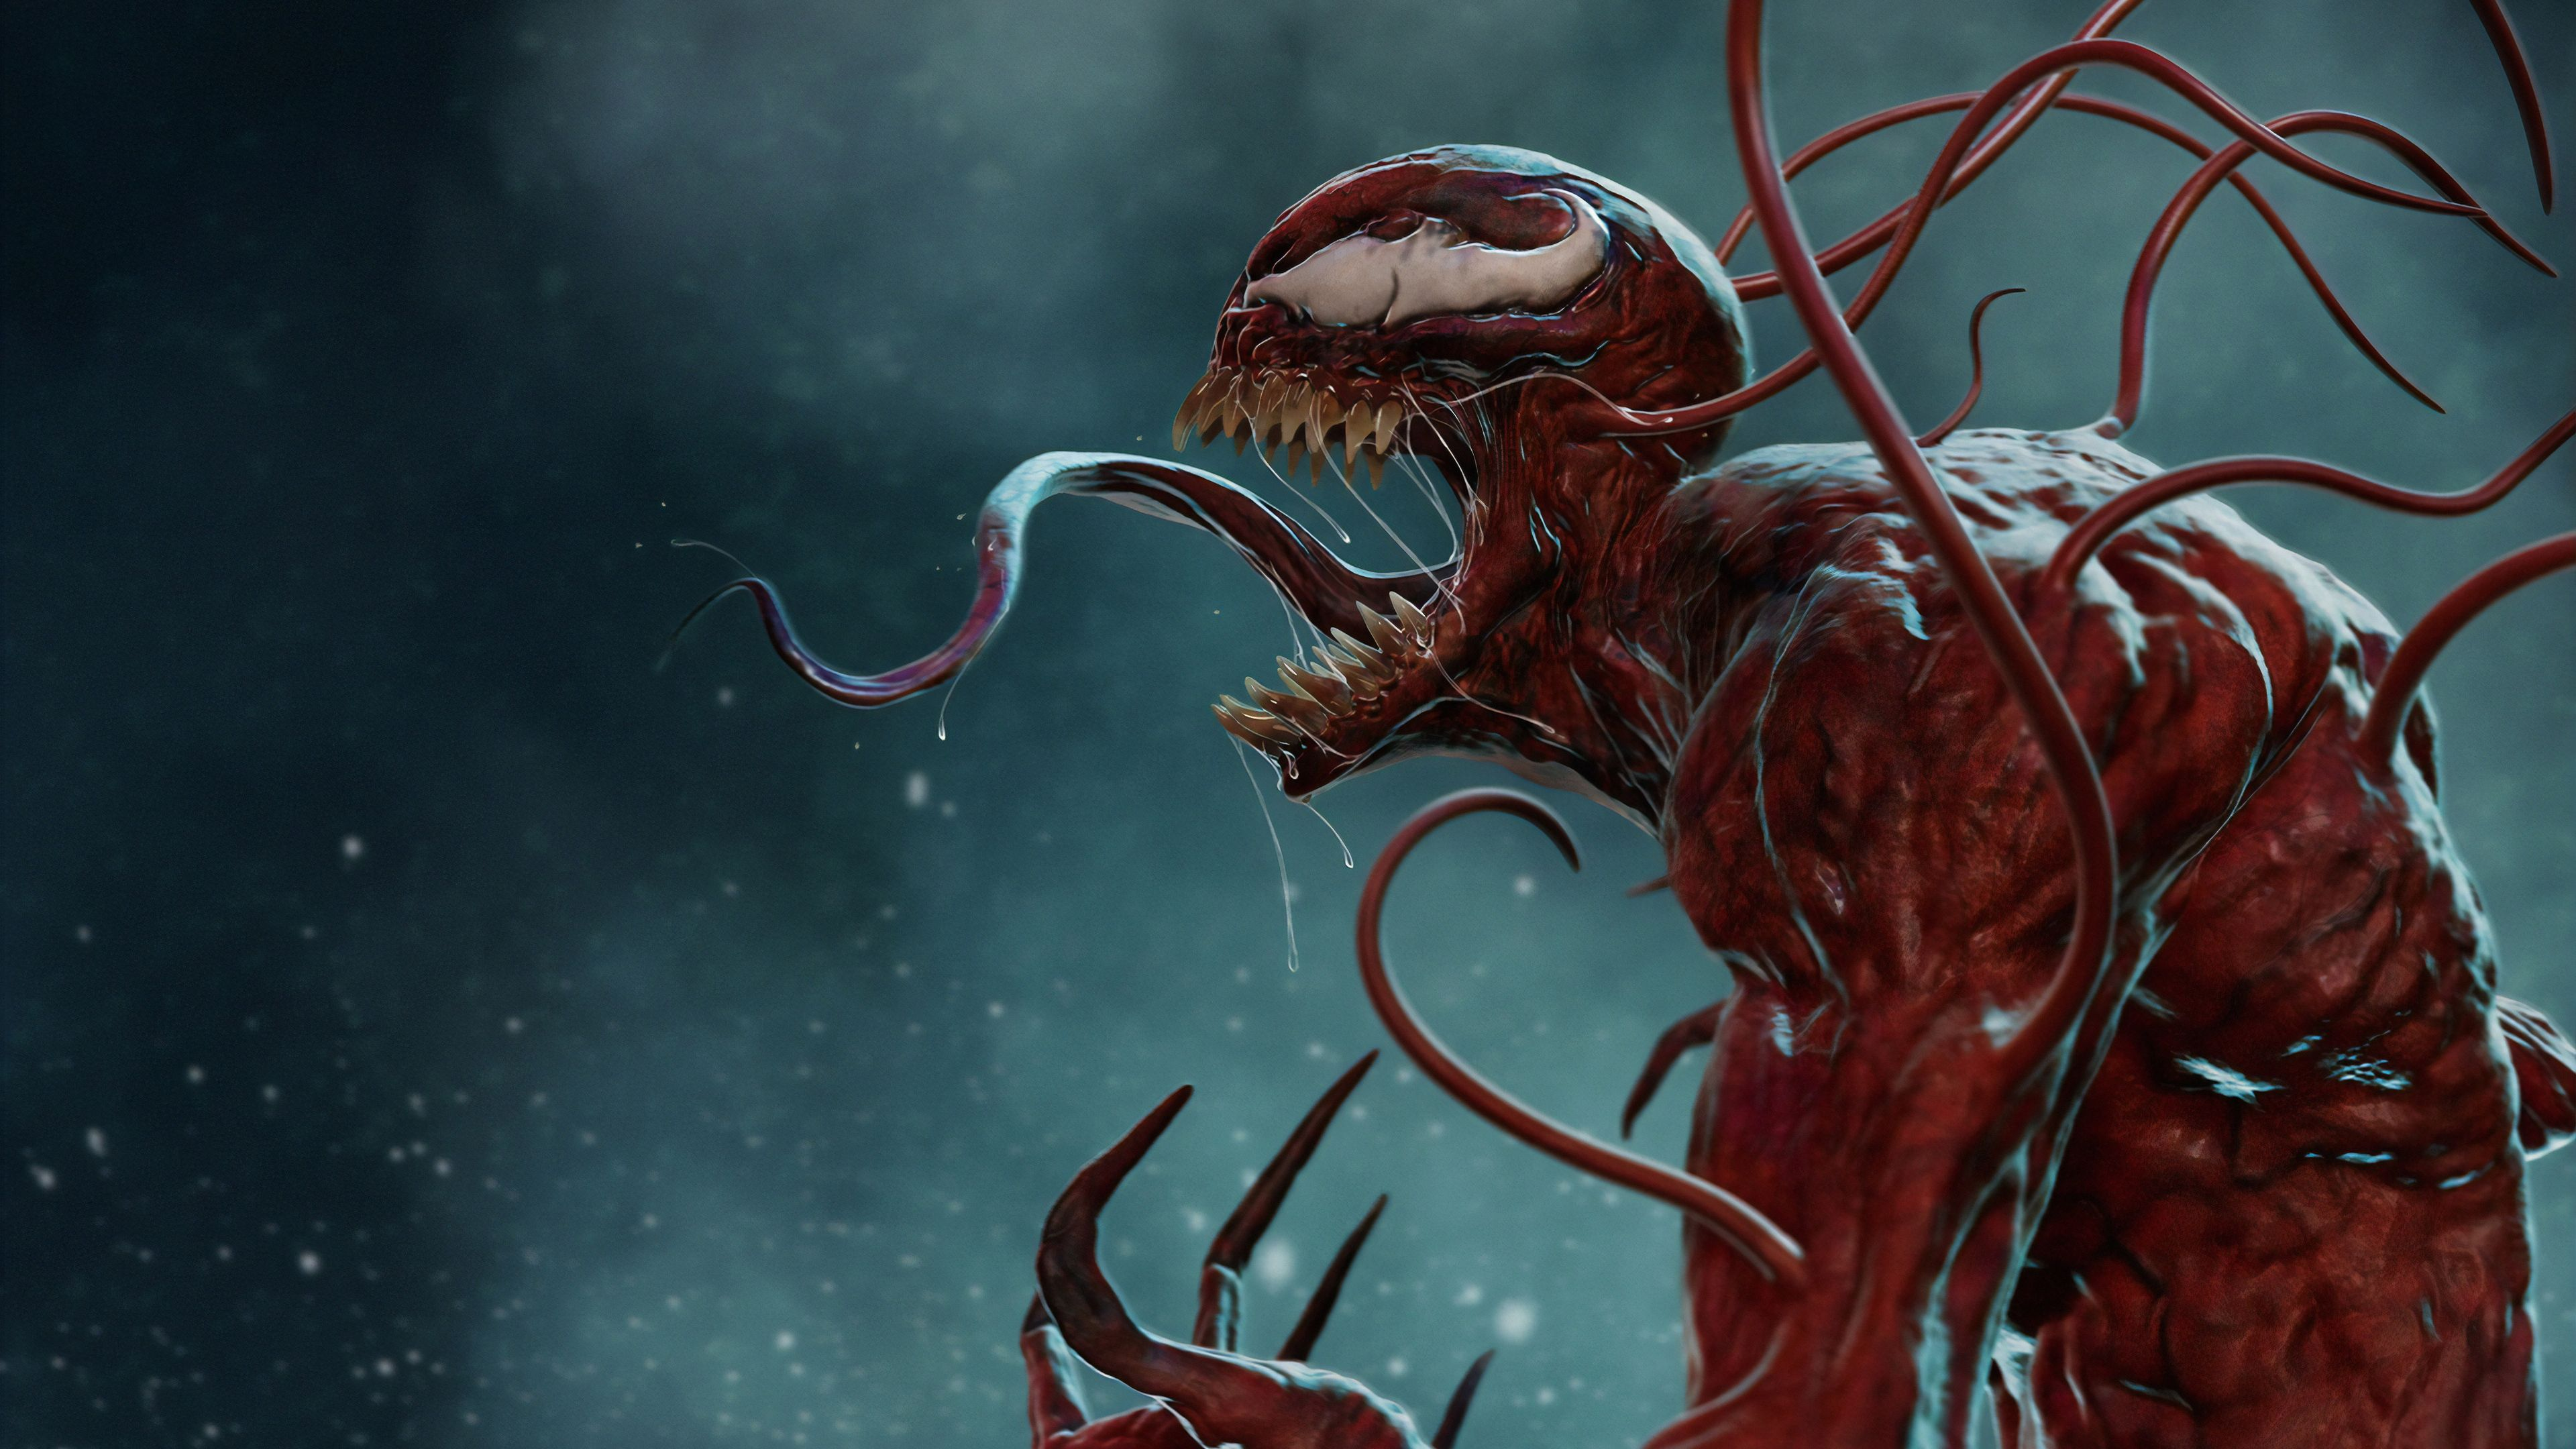 Carnage Newart Supervillain Wallpapers Superheroes Wallpapers Hd Wallpapers Carnage Wallpapers Artwork Wallp In 2020 Carnage Marvel Marvel Comics Wallpaper Carnage